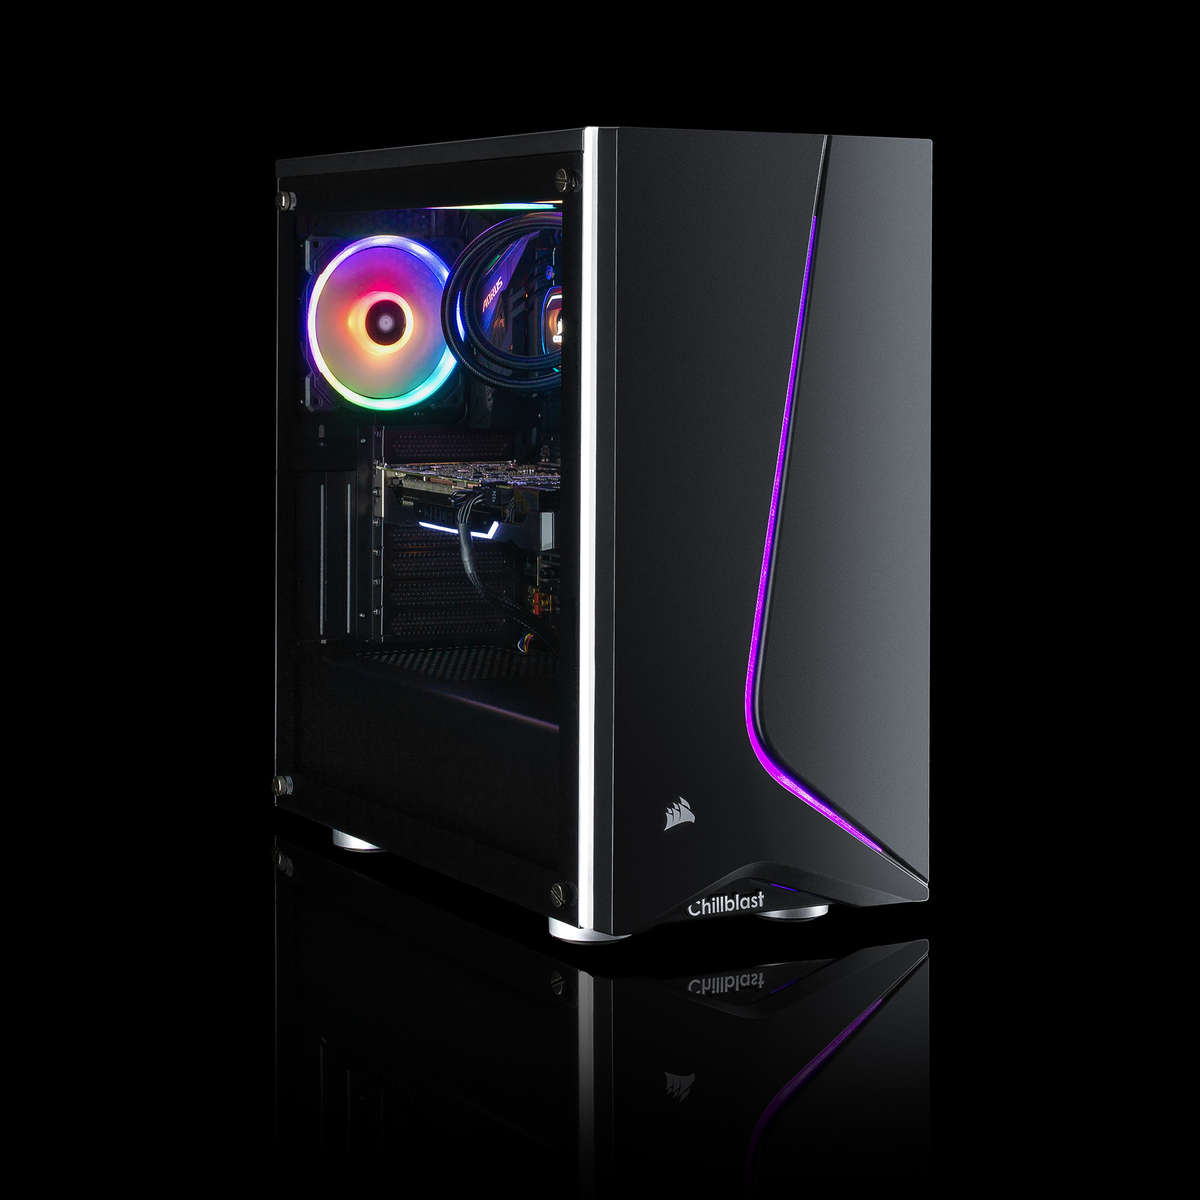 Chillblast Fusion Marauder RTX 2070 Gaming PC